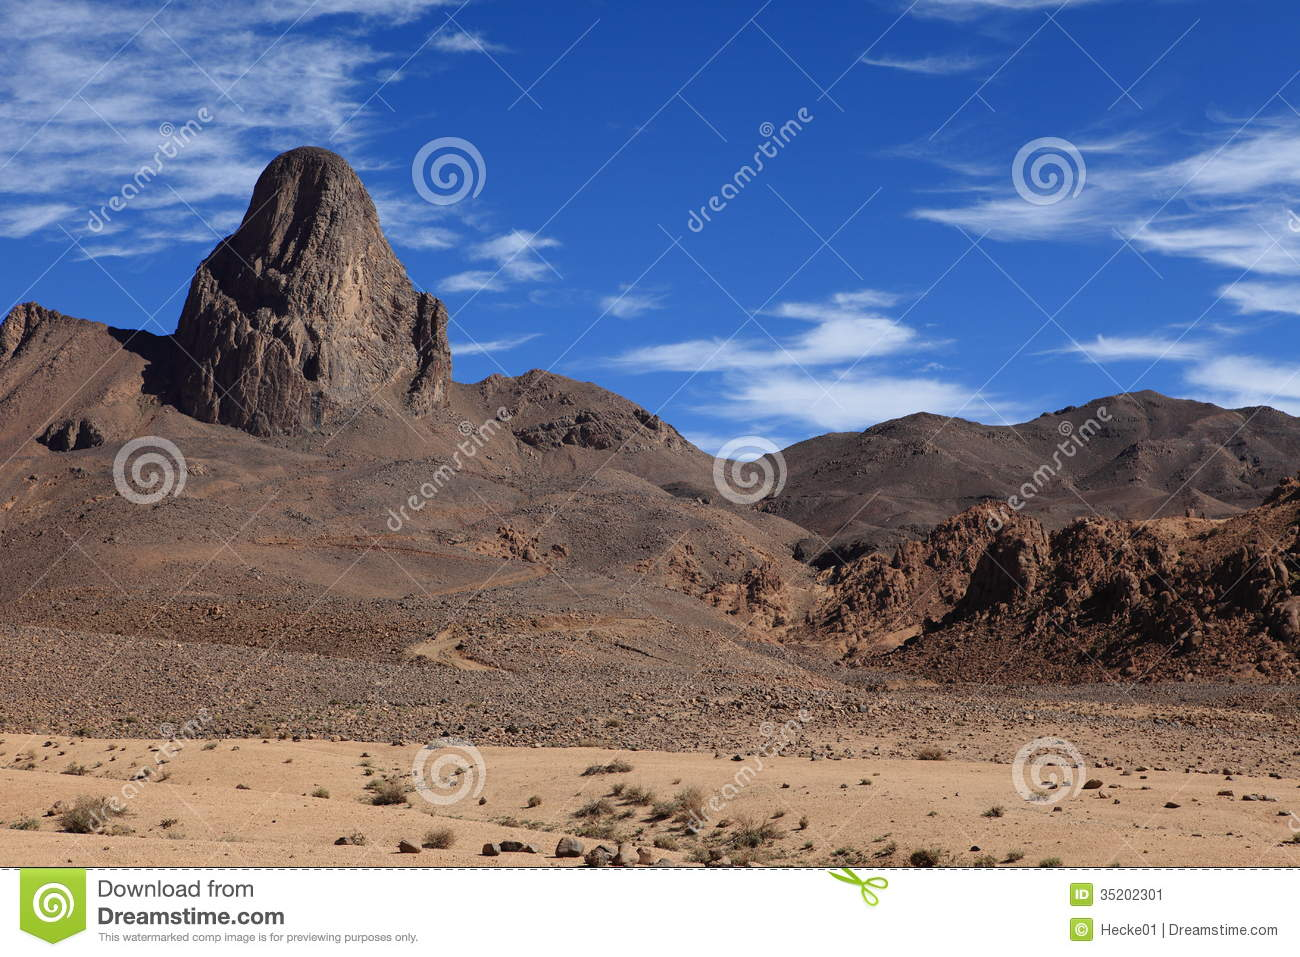 Hoggar Mountains clipart #12, Download drawings